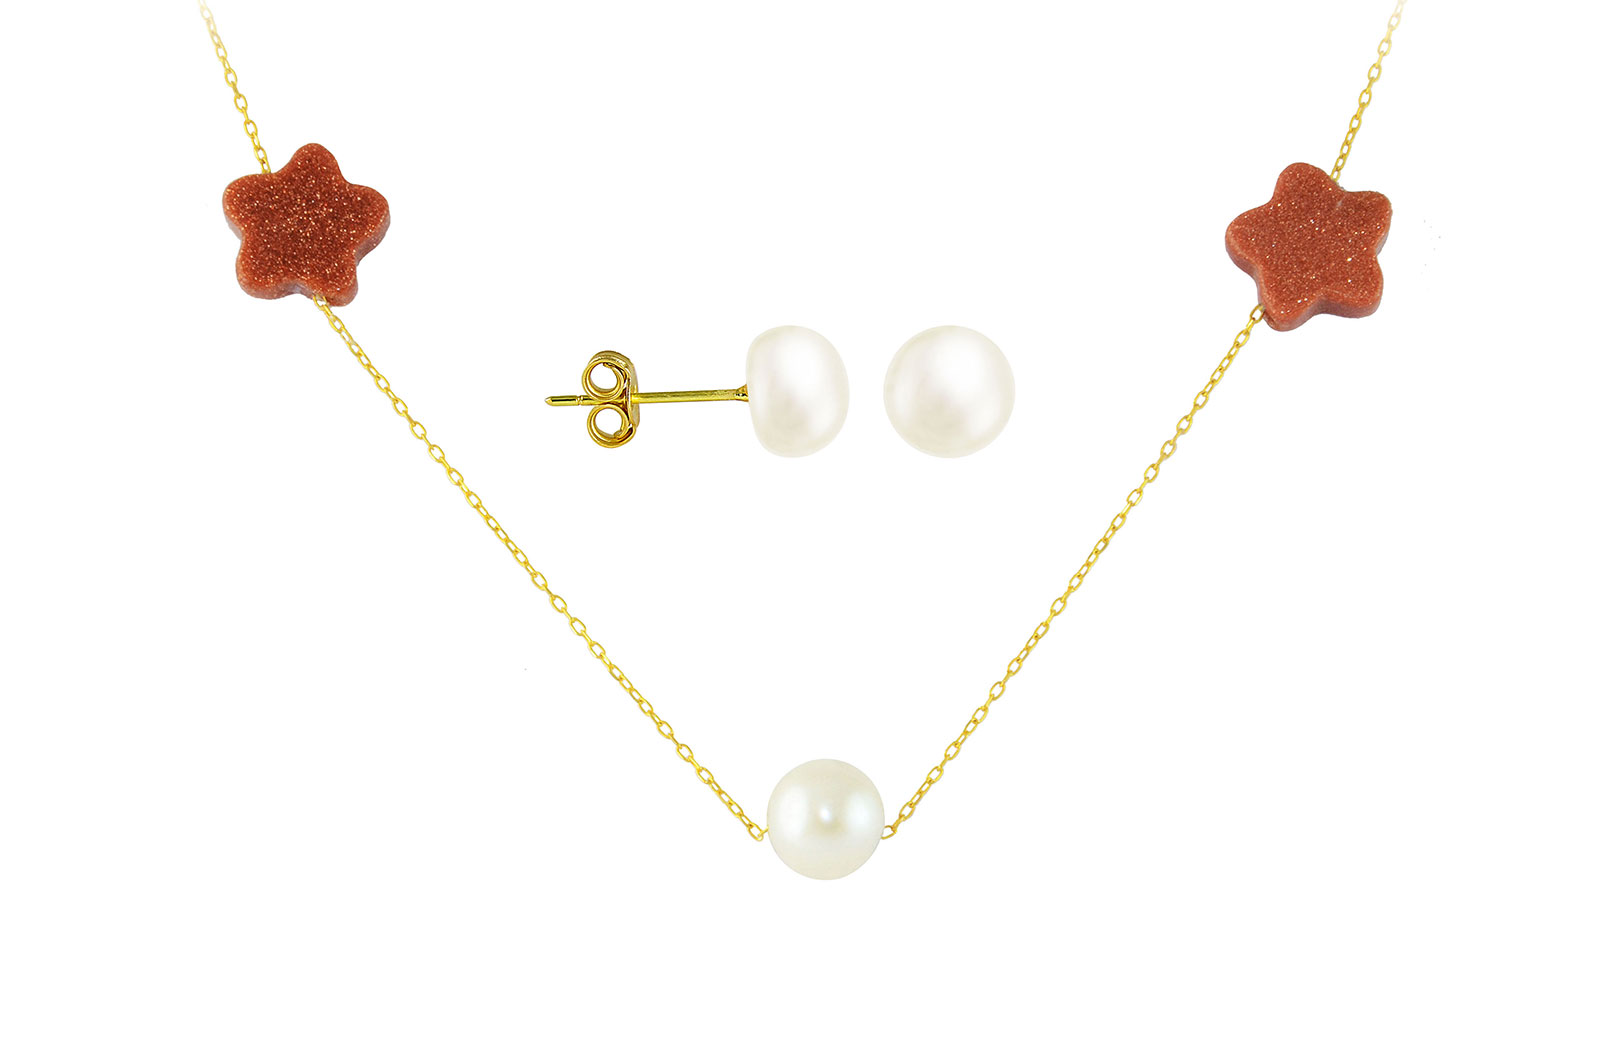 Vera Perla  18K Solid Gold Star Sunstones and Pearl Necklace+ 18K Gold 7mm Pearl Earrings